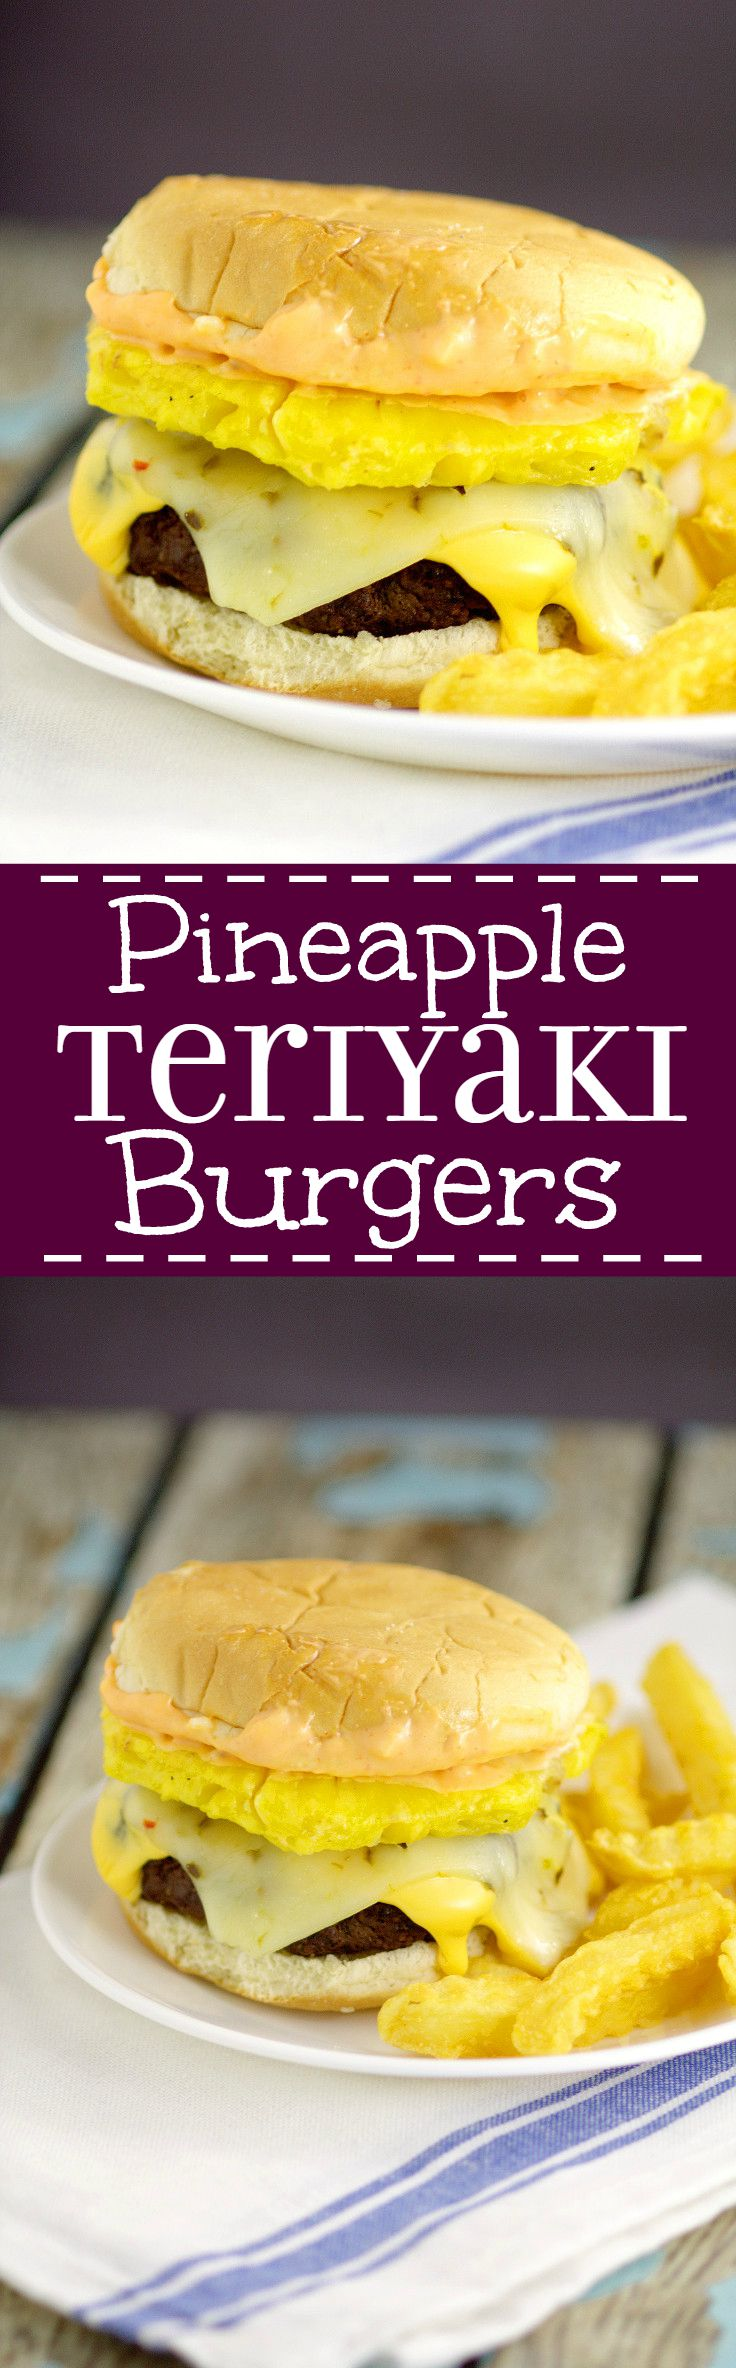 Pineapple Teriyaki Burgers recipe - Traditional juicy hamburgers featuring a sweet pineapple topping with tangy Teriyaki sauce right in the burger. Top with lots of gooey cheese! Super yummy Summer grill, cookout, or BBQ idea!